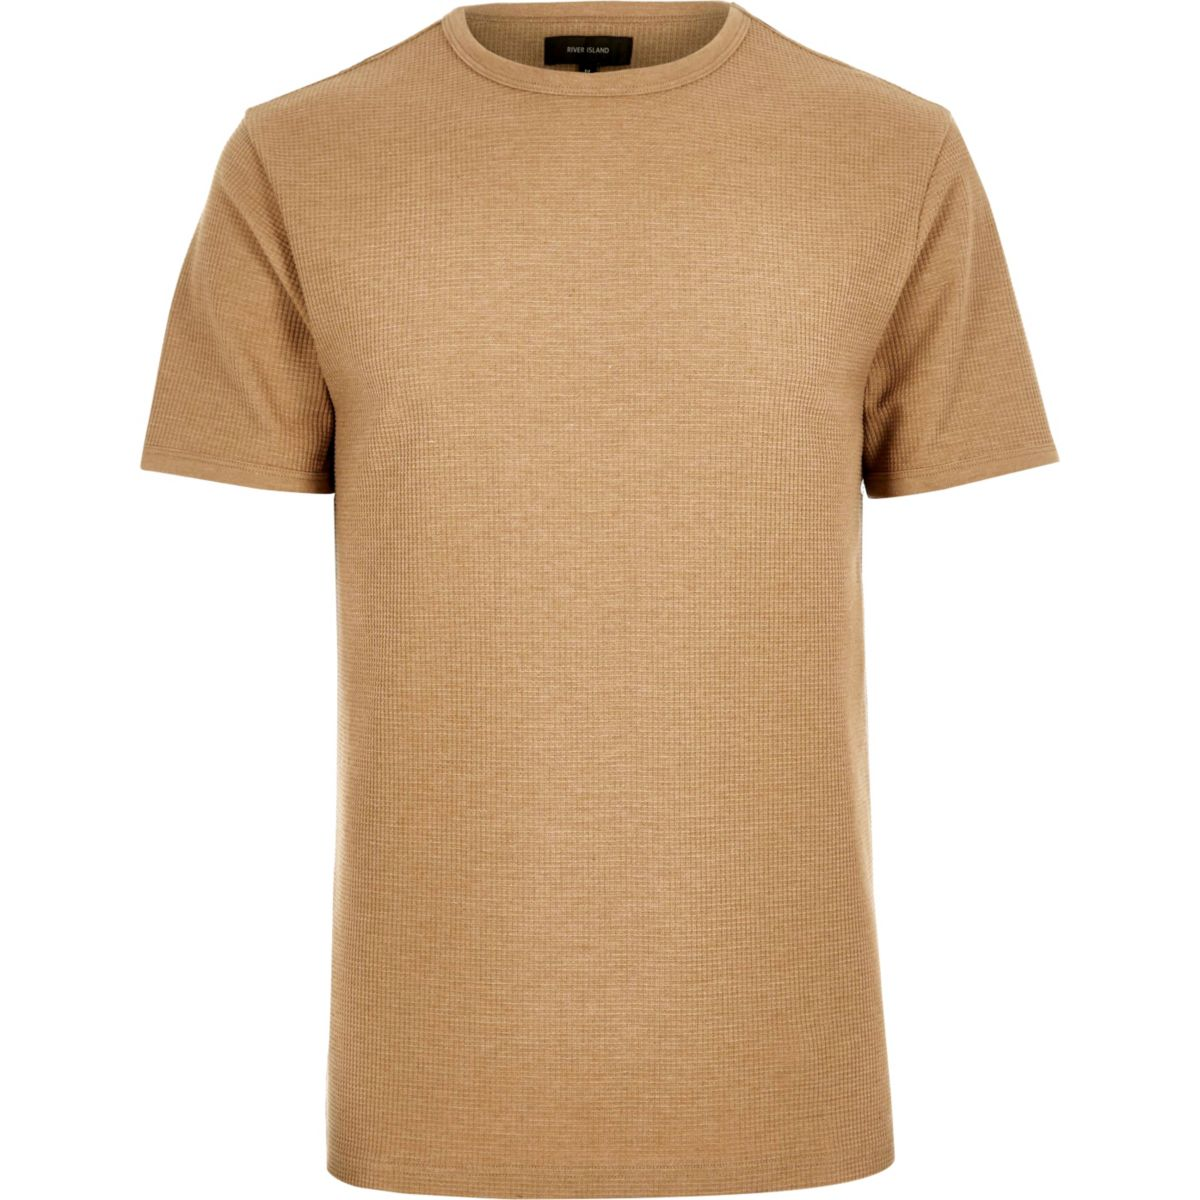 Slim Fit T-Shirt mit Waffle-Struktur in Camel